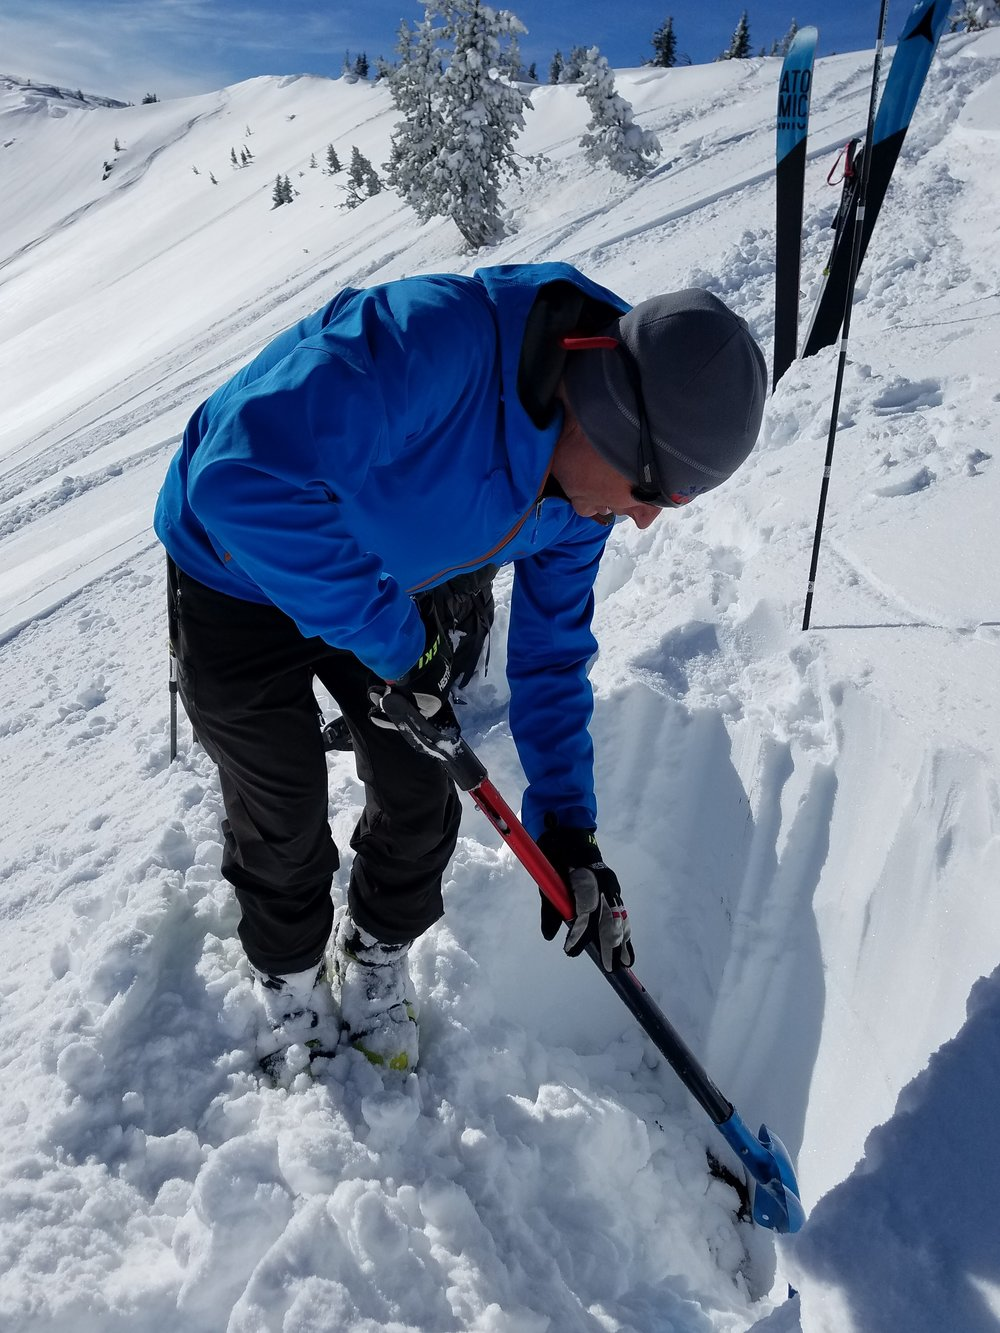 Avalanche awareness in the backcountry is important